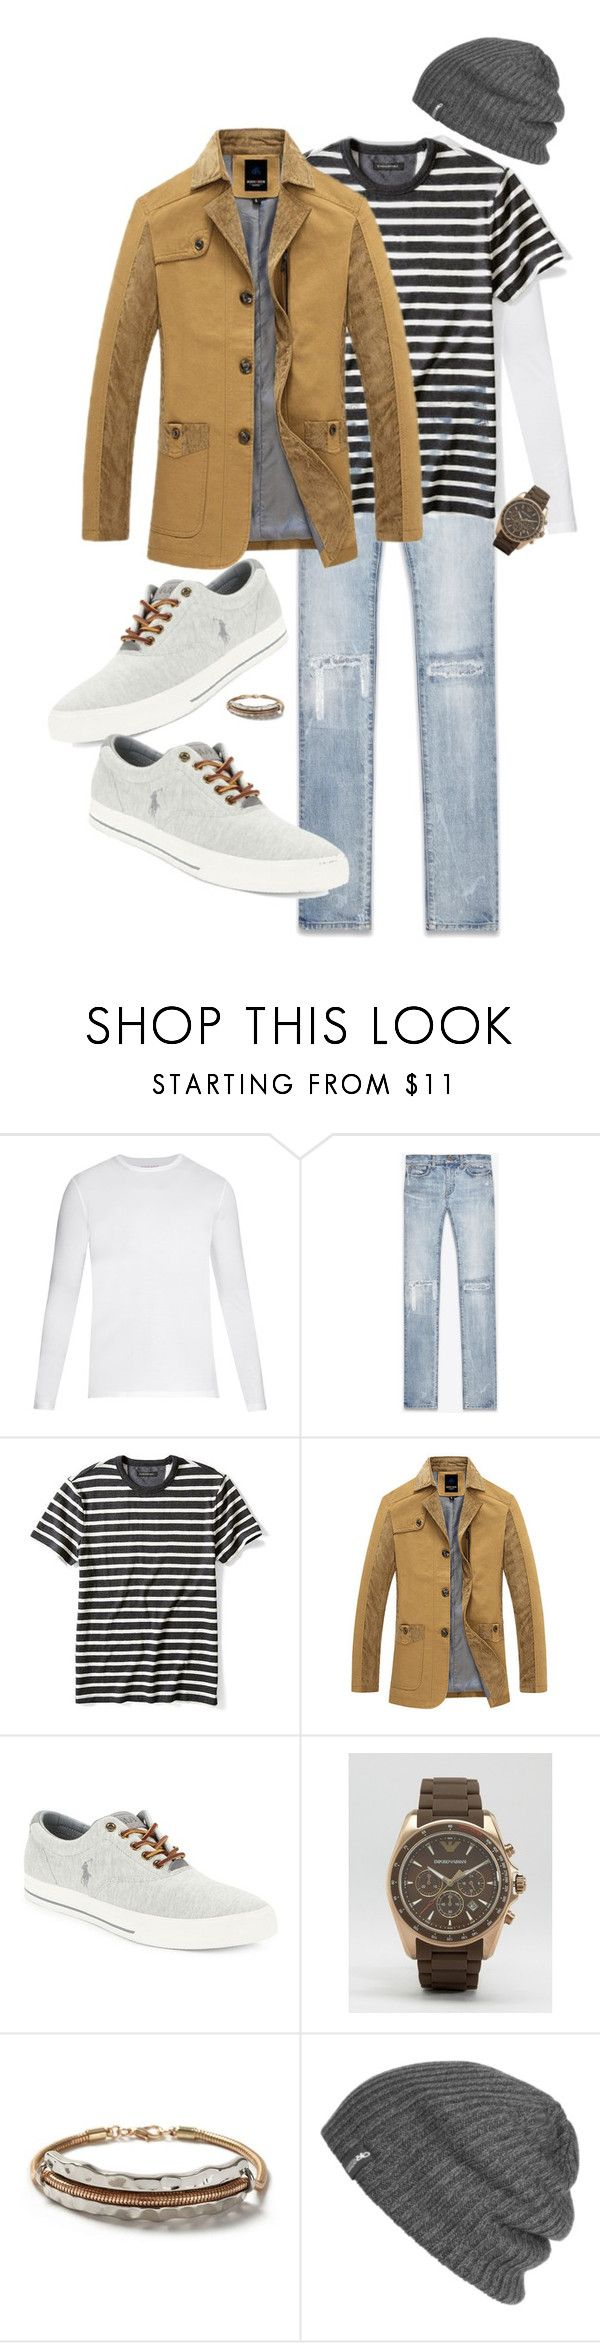 """""""Joey"""" by ccoss on Polyvore featuring Derek Rose, Yves Saint Laurent, Banana Republic, Polo Ralph Lauren, Emporio Armani, Topman, Outdoor Research, men's fashion and menswear"""